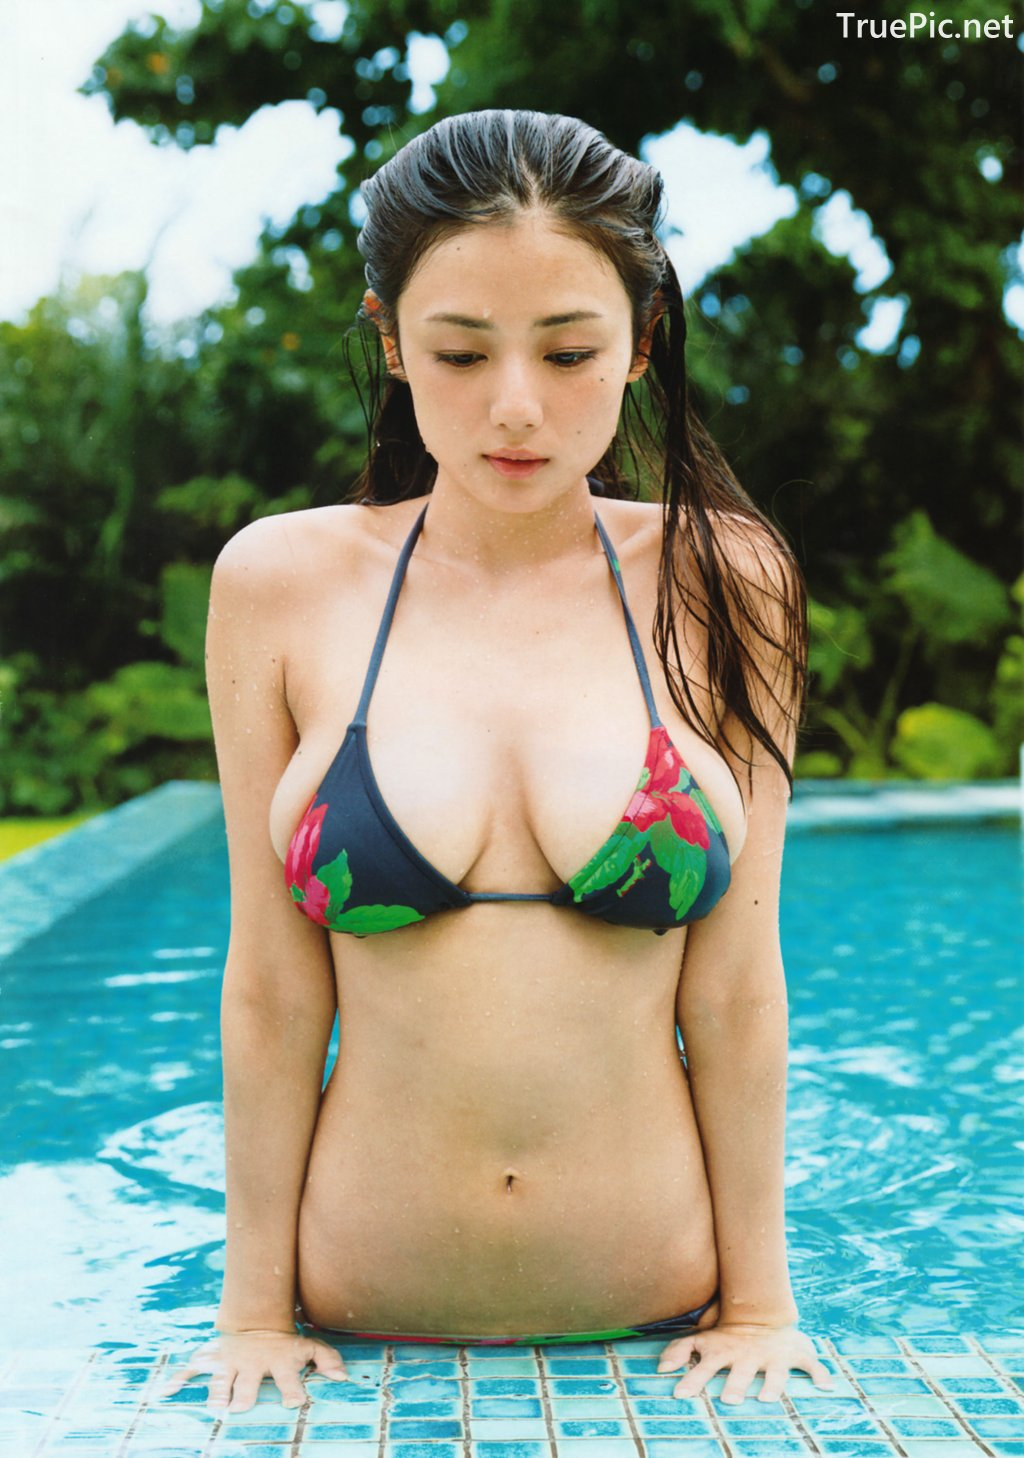 Image-Japanese-Actress-Gravure-Idol-Moemi-Katayama-Mermaid-From-Tokyo-Japan-TruePic.net- Picture-1